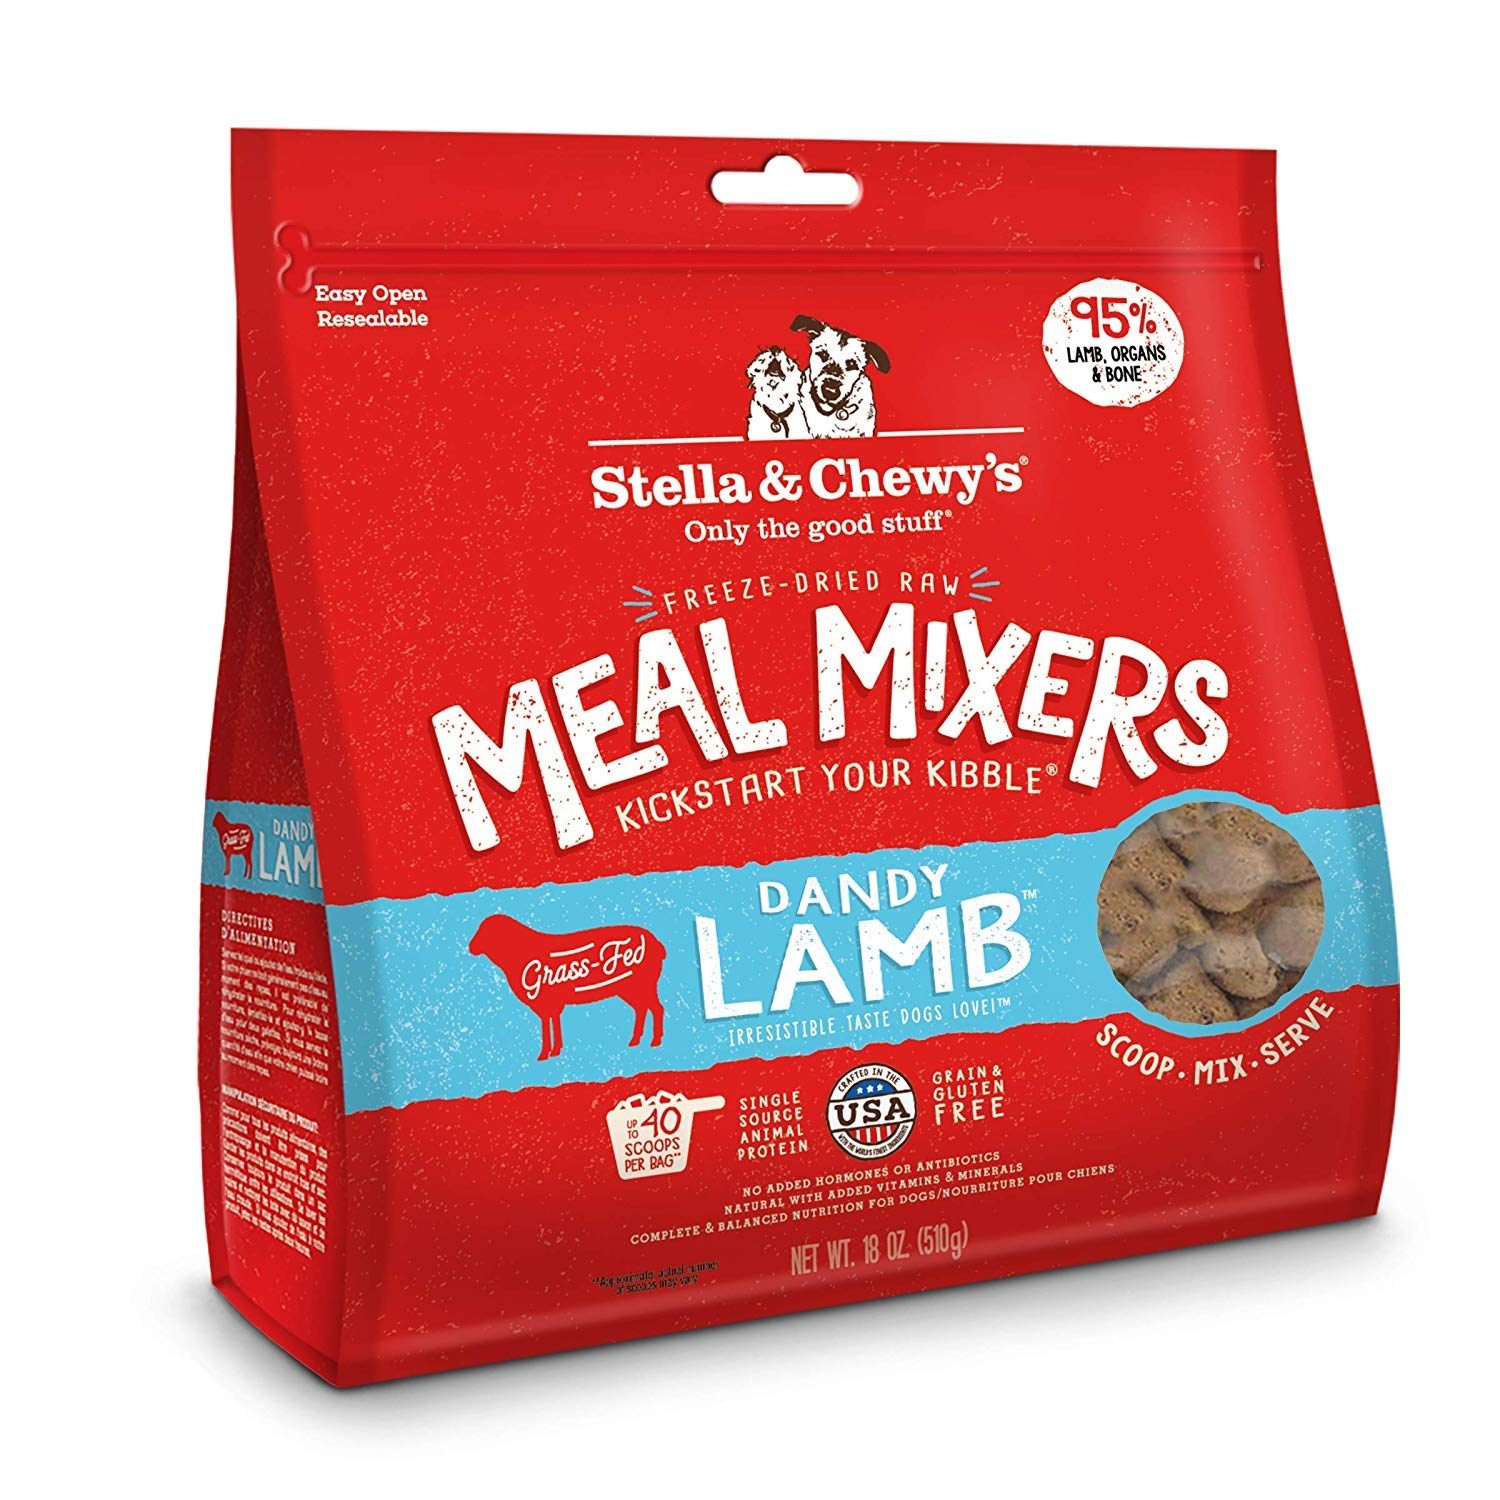 Stella & Chewy's 1 Pouch Freeze Dried Super Meal Mixers, Lamb, 36 Ounce by Stella & Chewy's